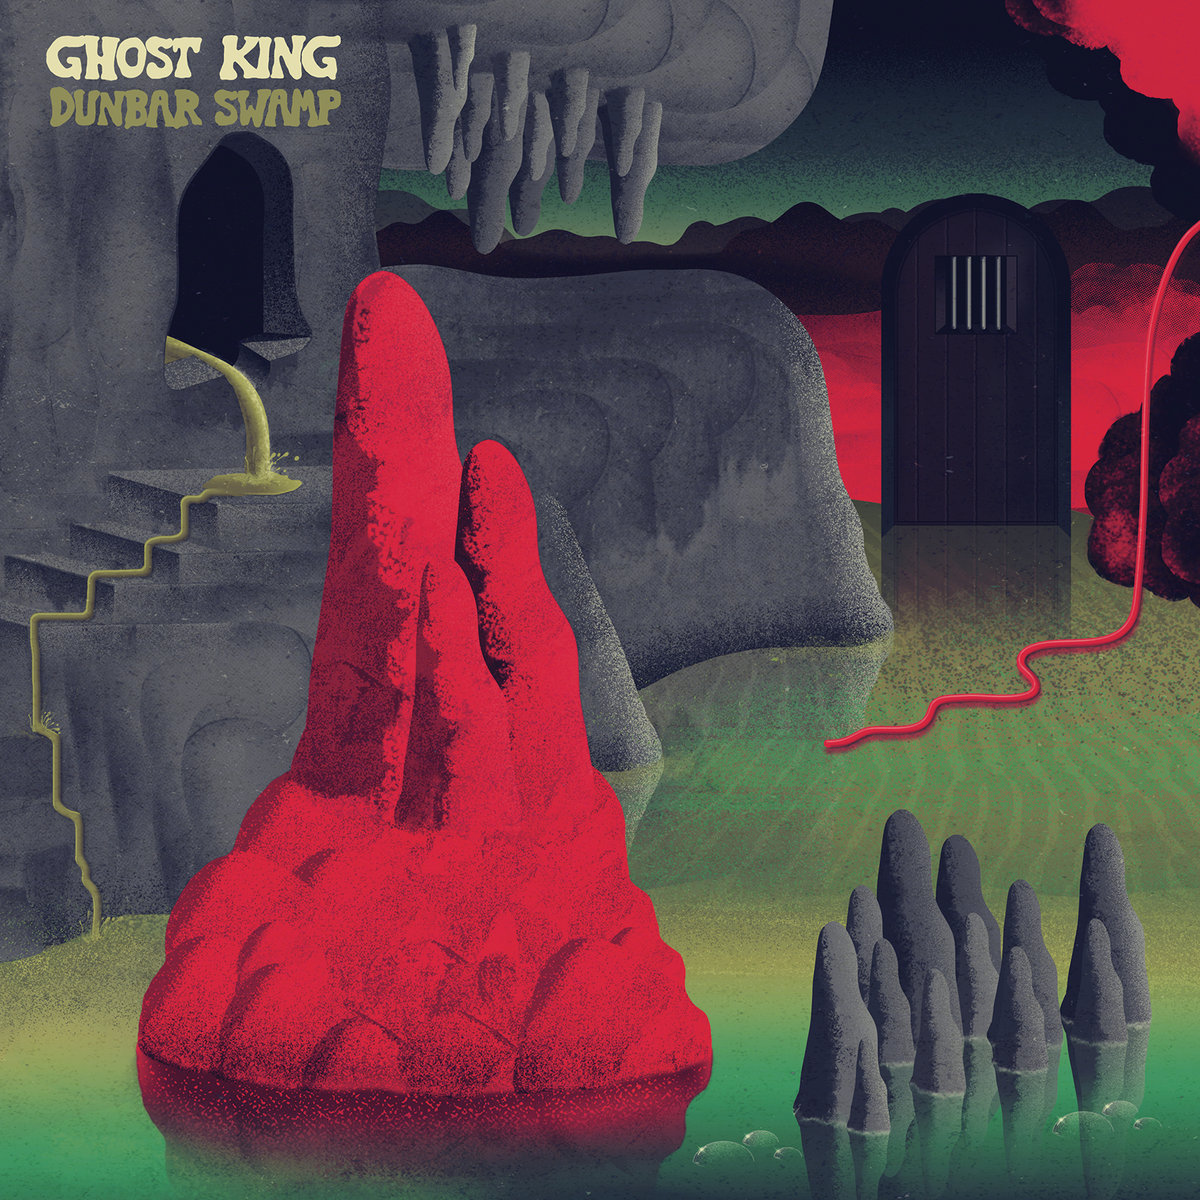 Check out what Tom was listening to in February! - Featuring songs from Ghost King, Plastic Picnic, Pavo Pavo, and more!